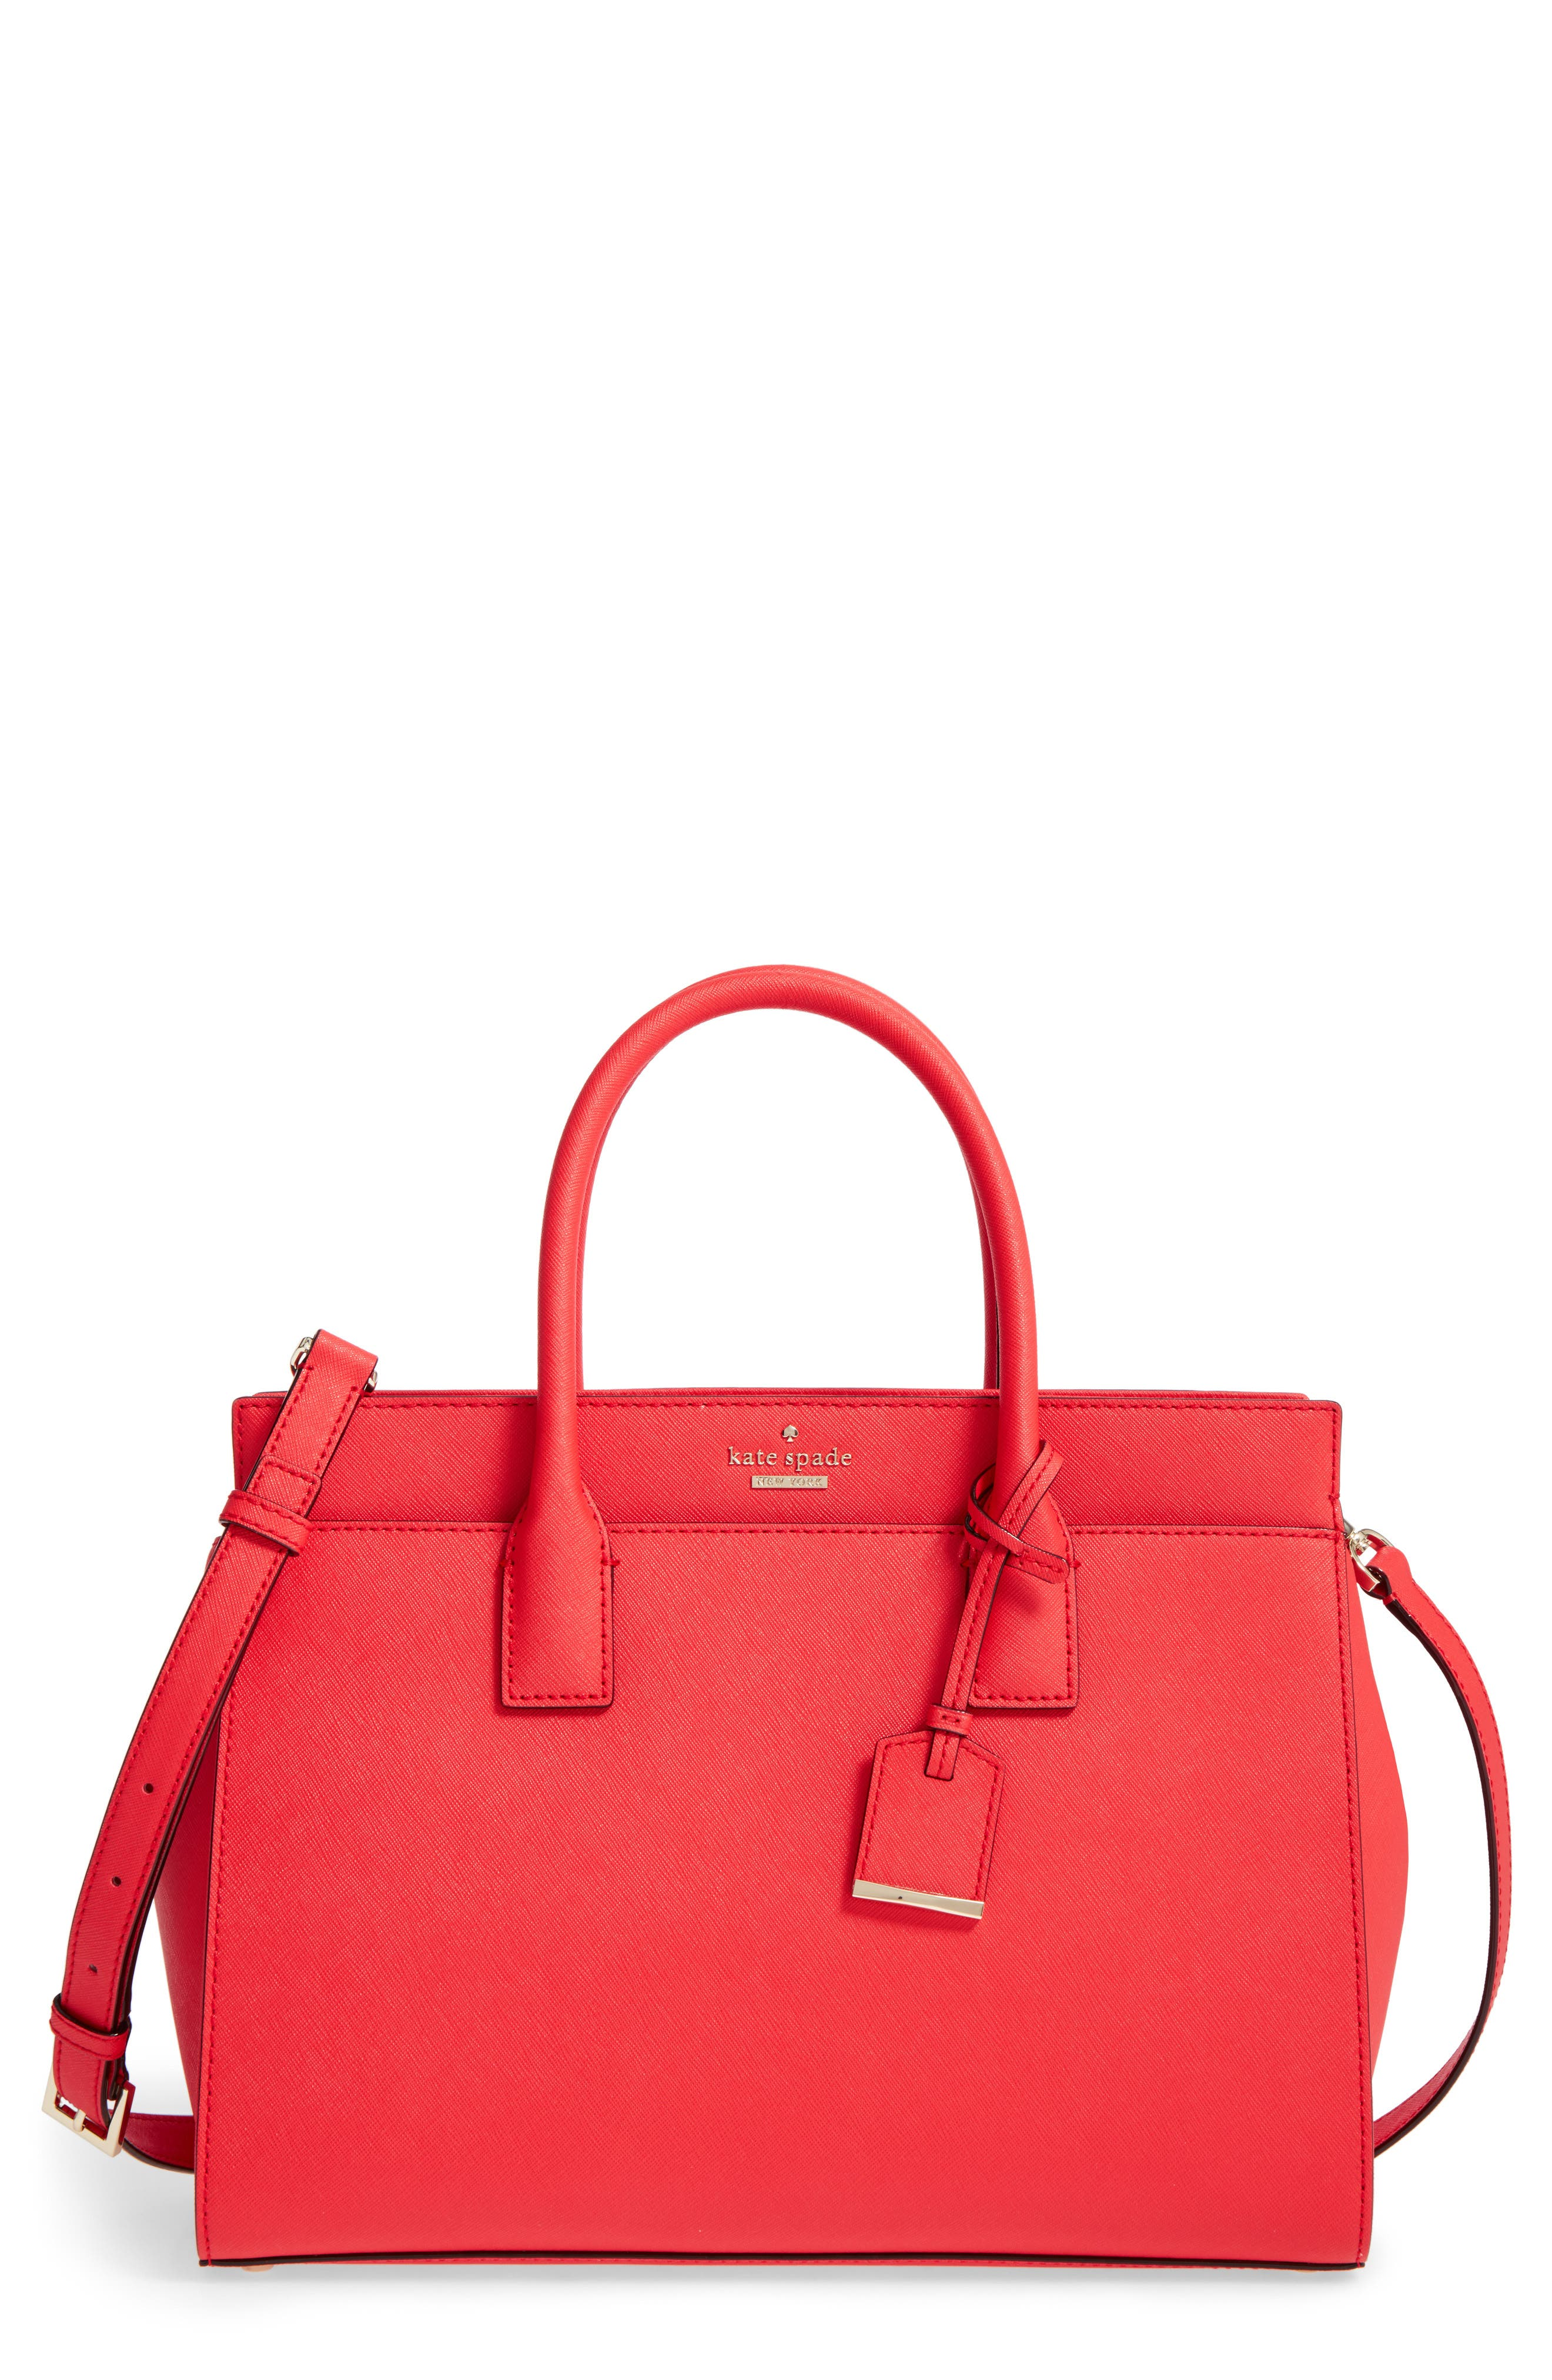 cameron street - candace leather satchel,                             Main thumbnail 18, color,